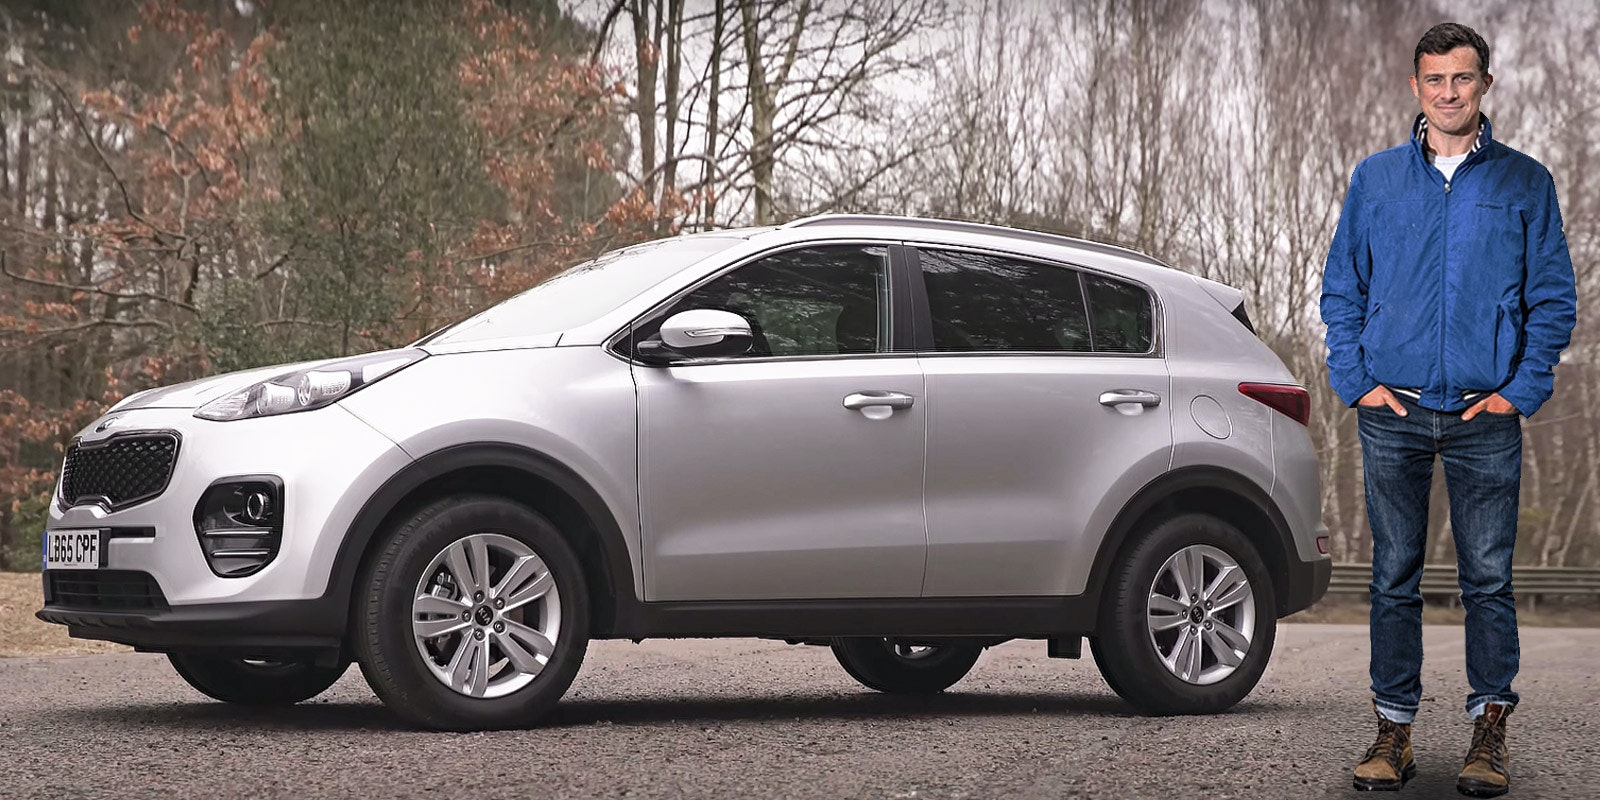 Watch our Kia Sportage video review